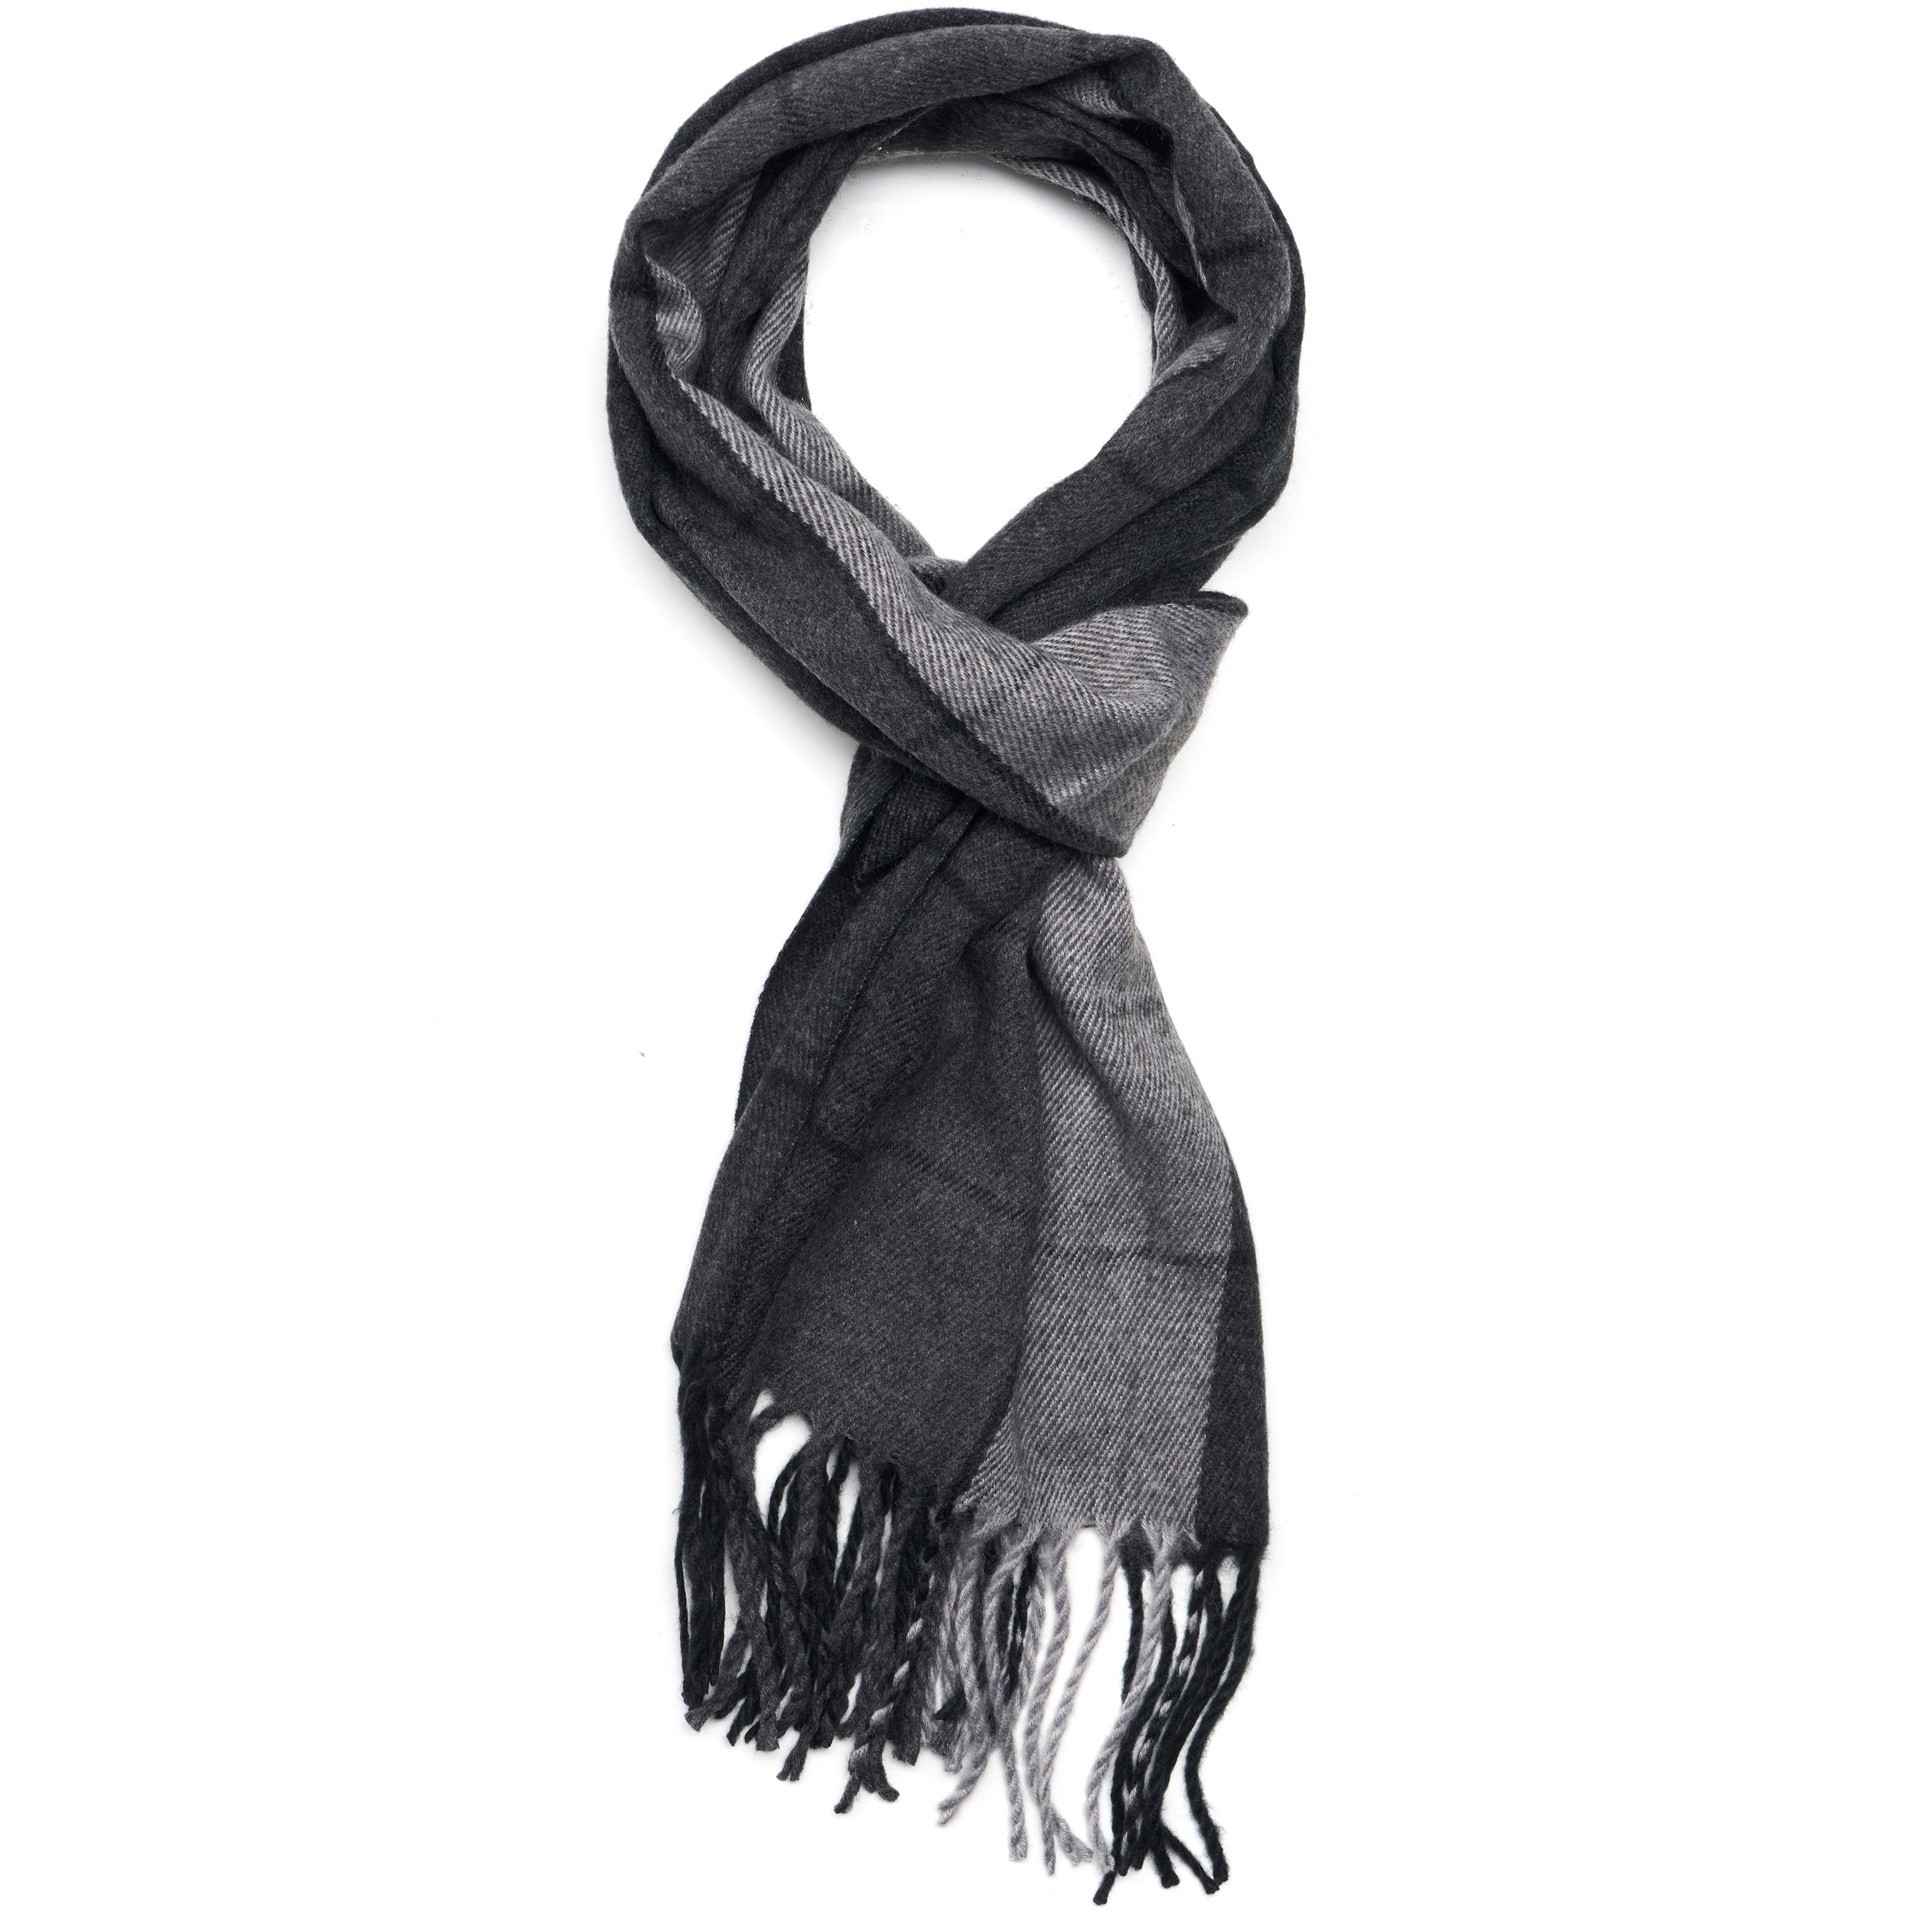 Hammer-Anvil-Mens-Plaid-Striped-Scarf-Womens-Winter-Scarves-Cashmere-Soft-Feel thumbnail 29